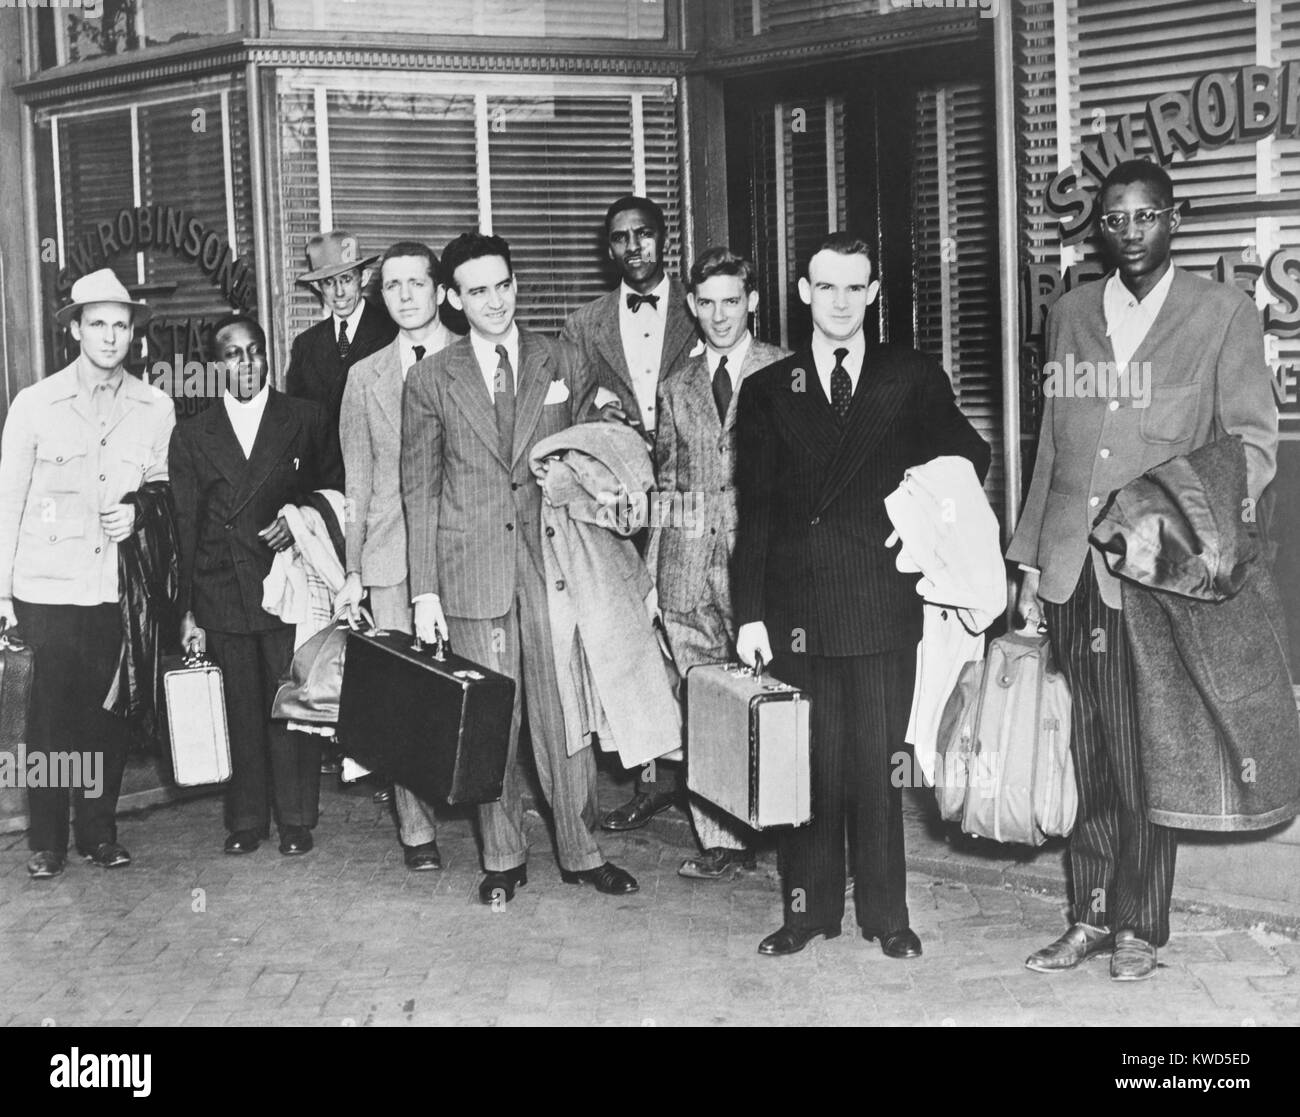 The first 'Freedom Riders' holding suitcases outside the office of Attorney S.W. Robinson. Richmond, Virginia - Stock Image